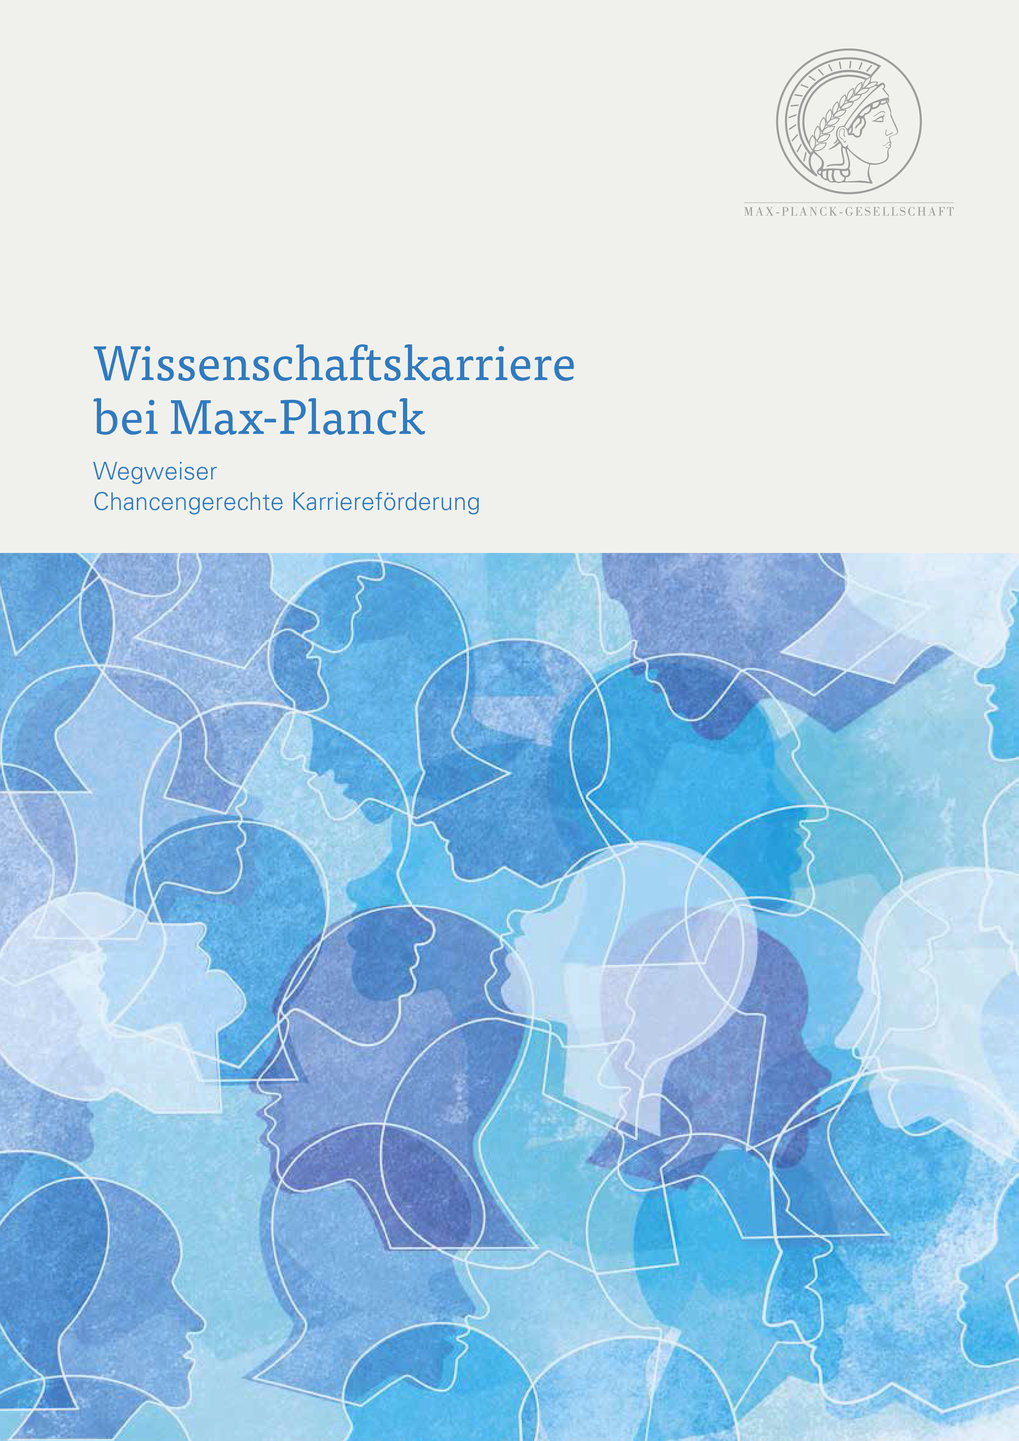 A guide on career advancement and equal opportunities within Max Planck.